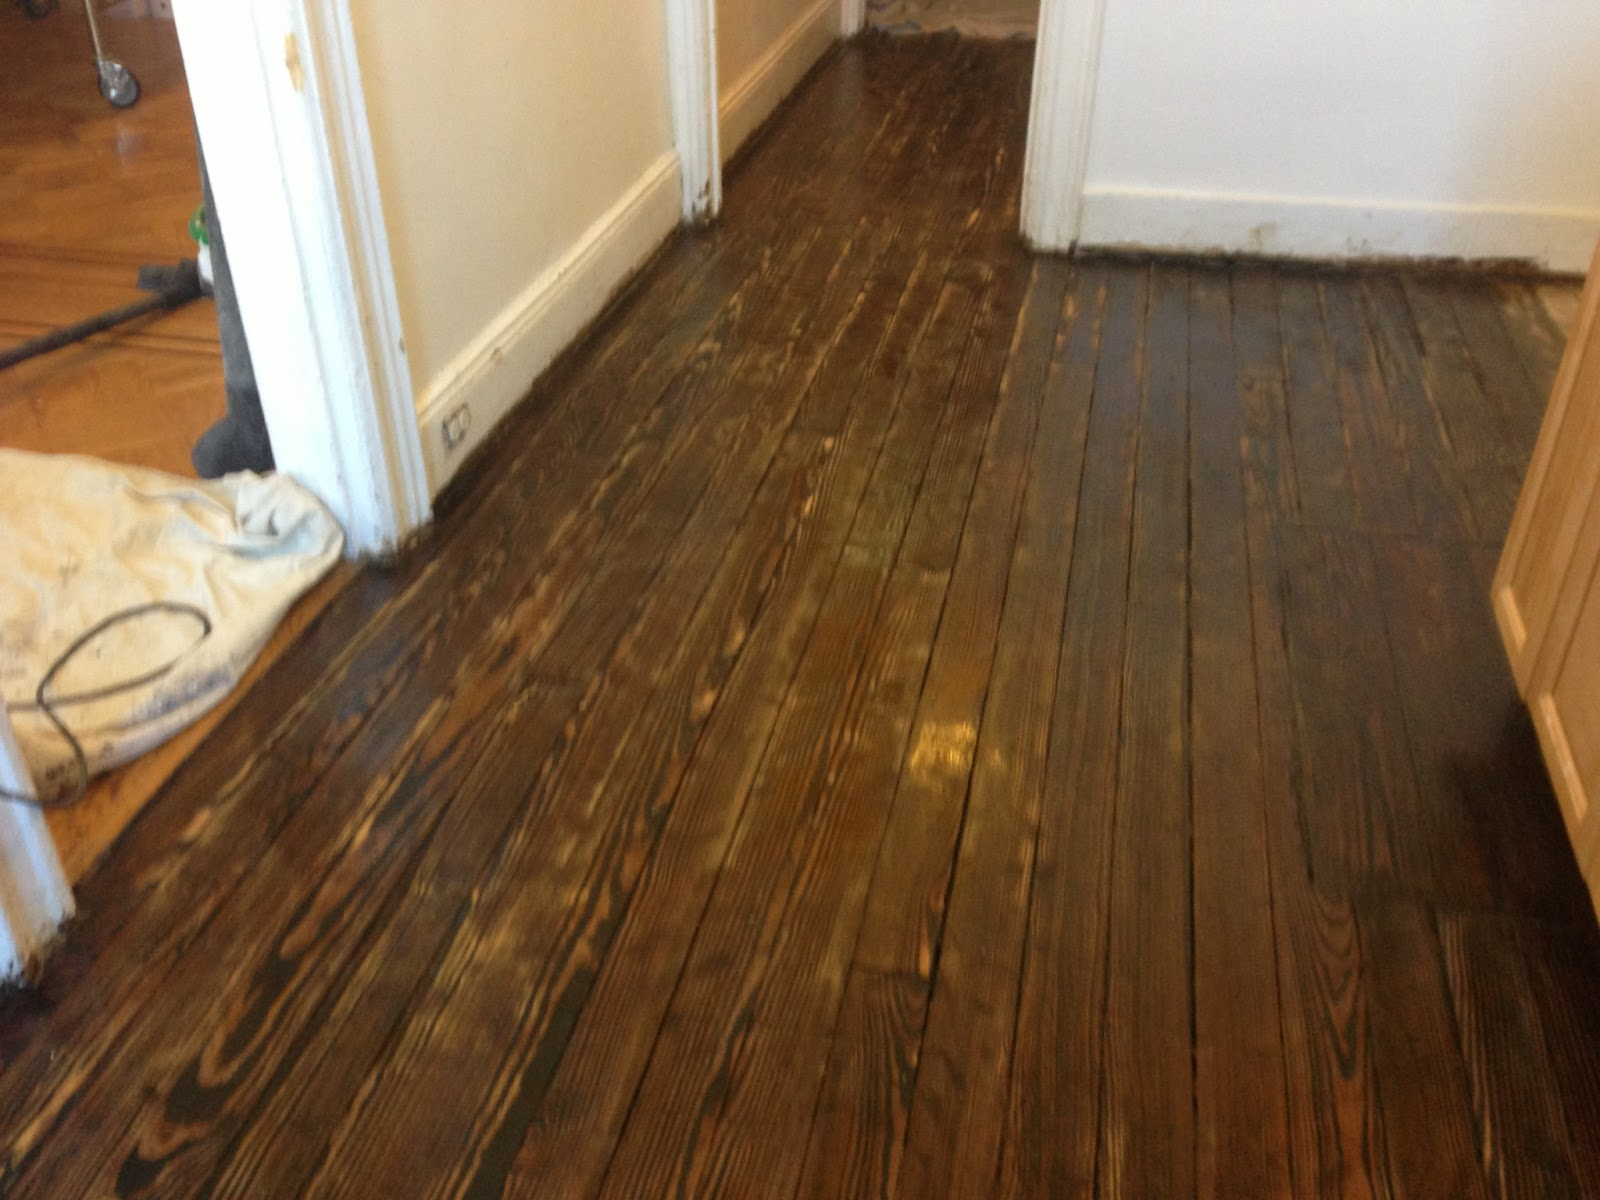 Popular buying our first home in queens, ny: Floors,stain, and finish KR91